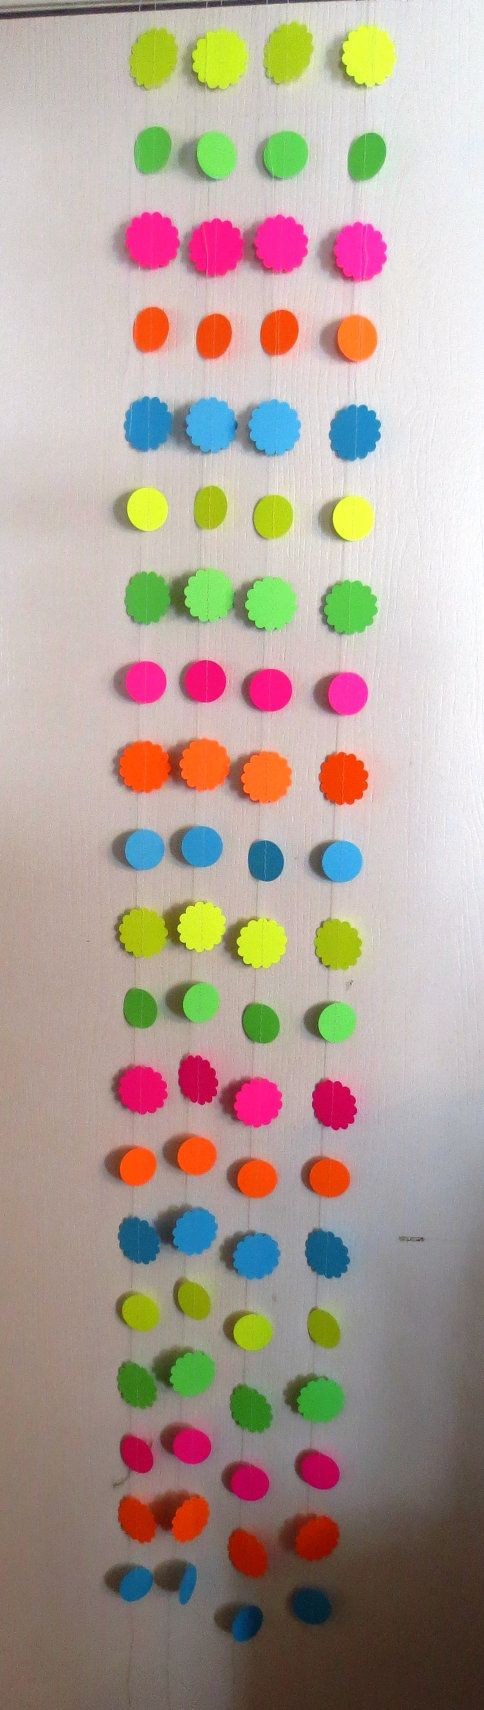 Neon Circle Paper Backdrop by coolcraftsandmore on Etsy, $20.00